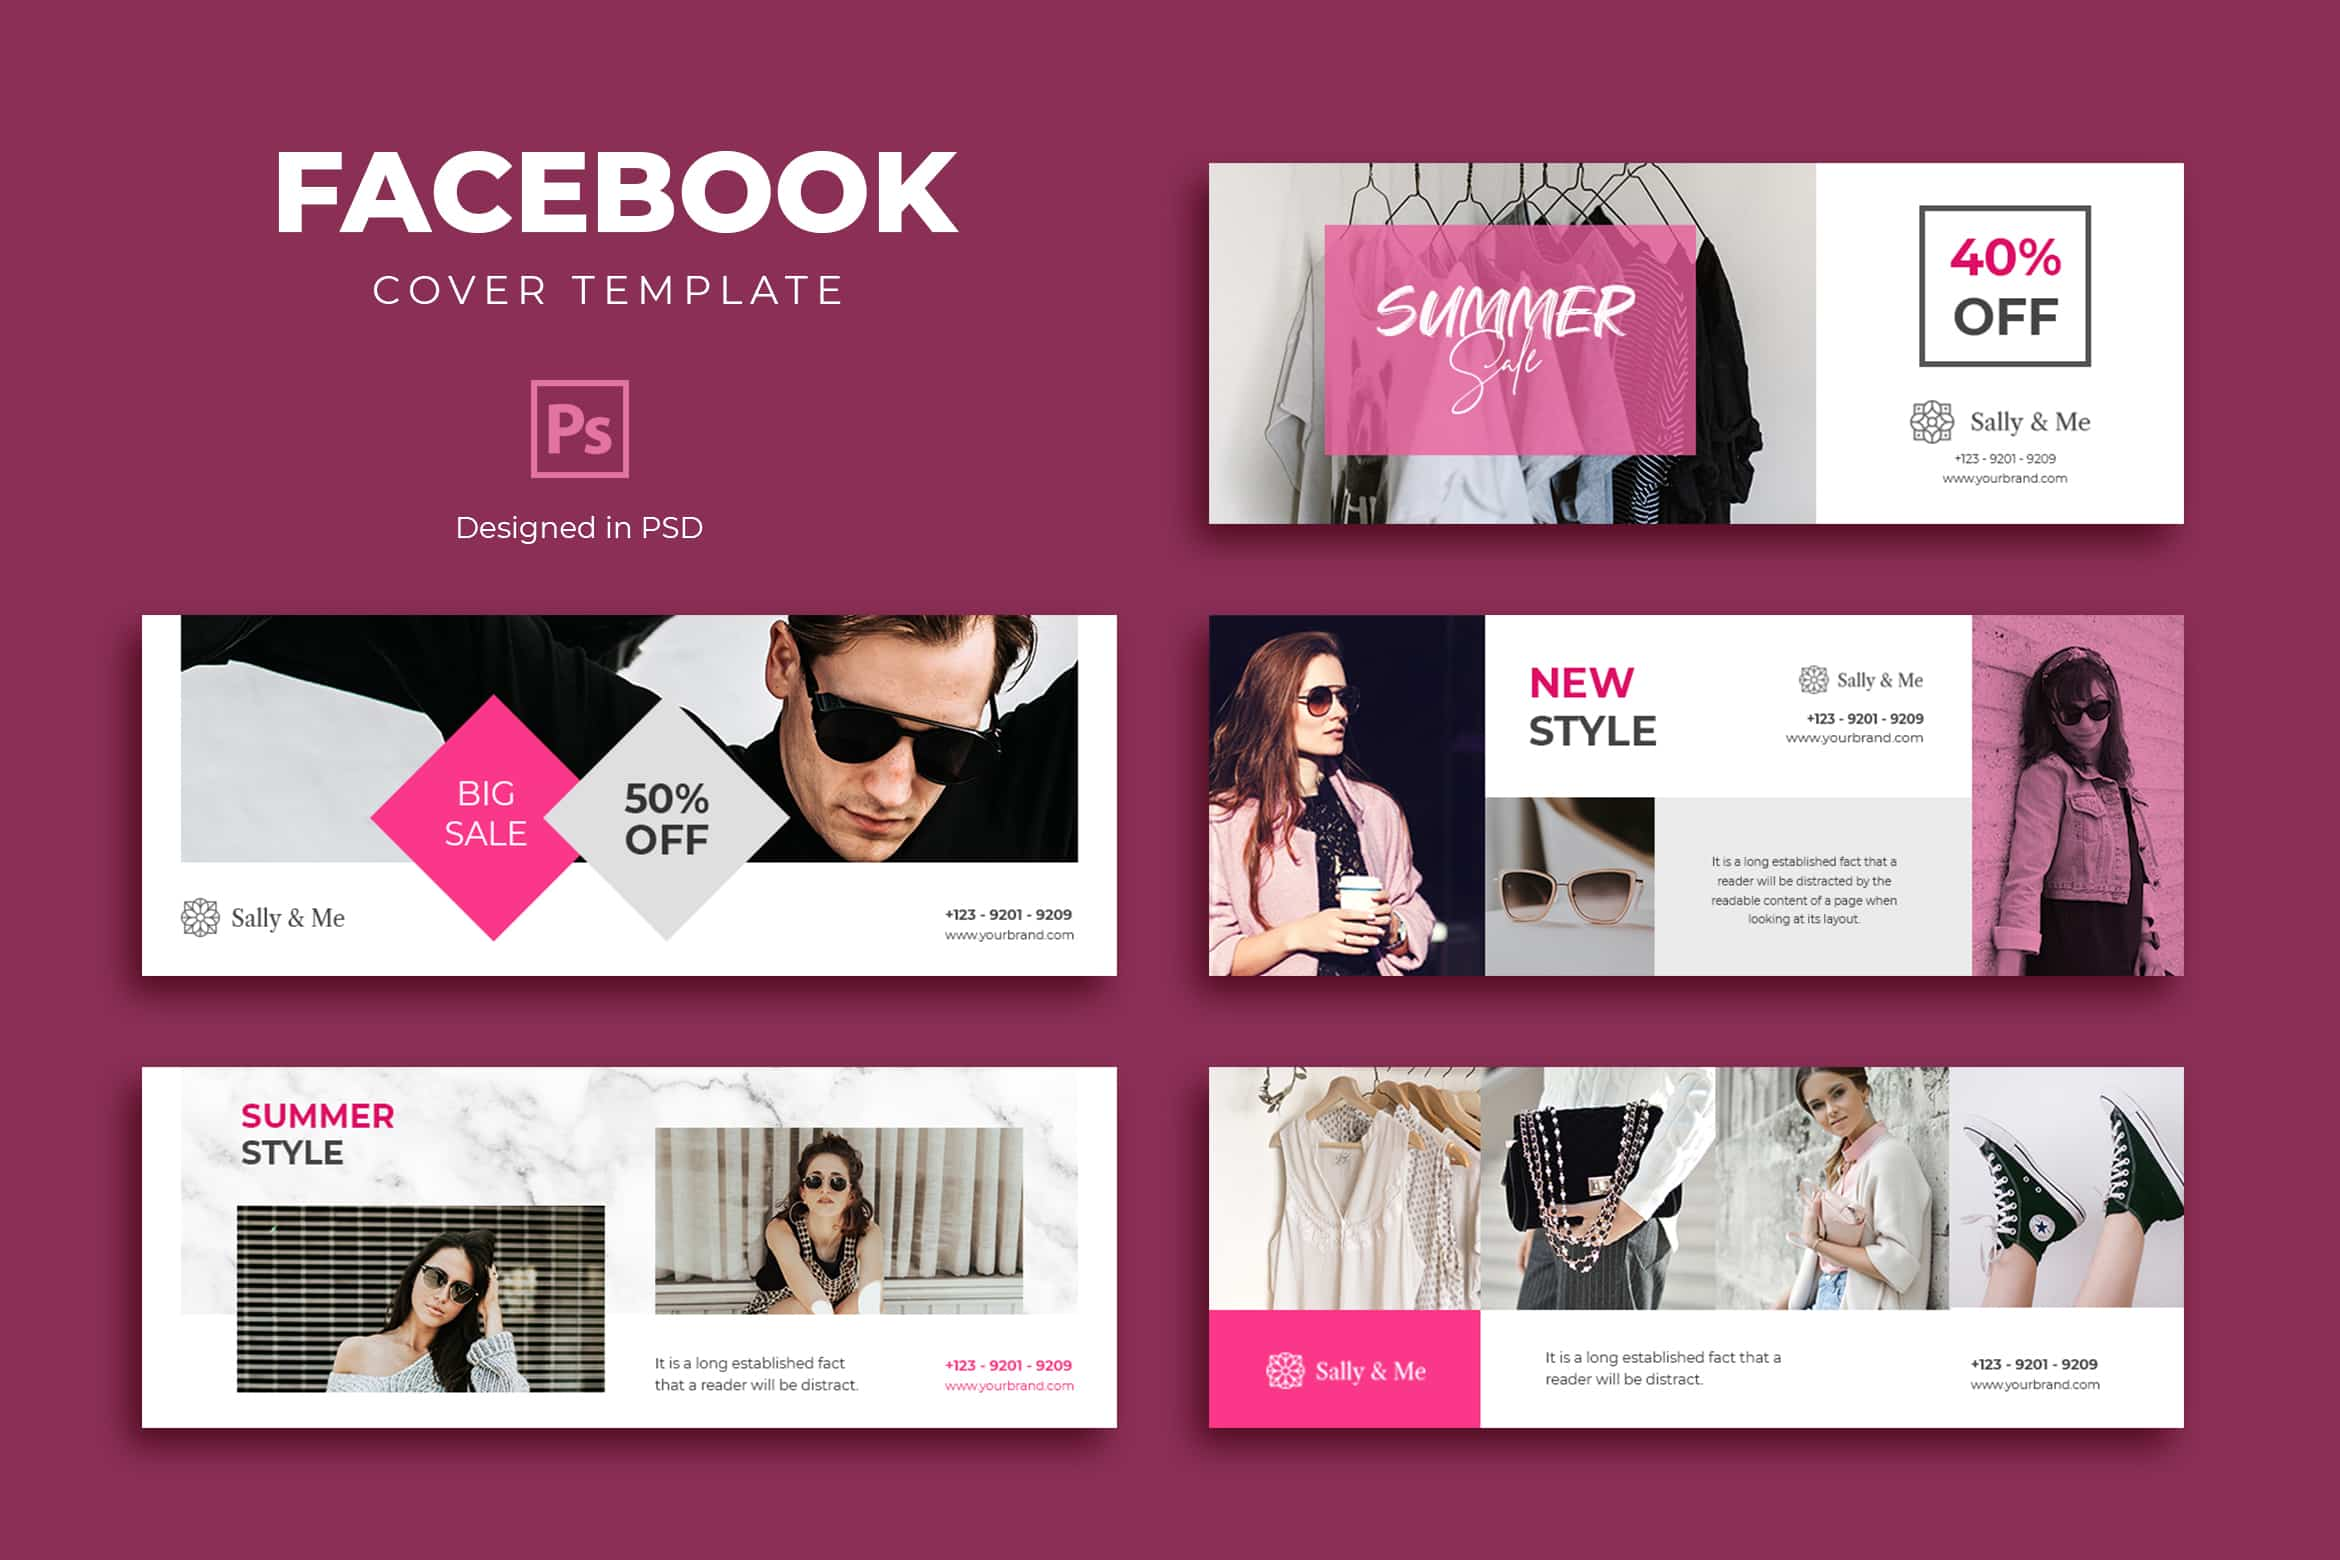 Facebook Cover - Summer Fashion Sale